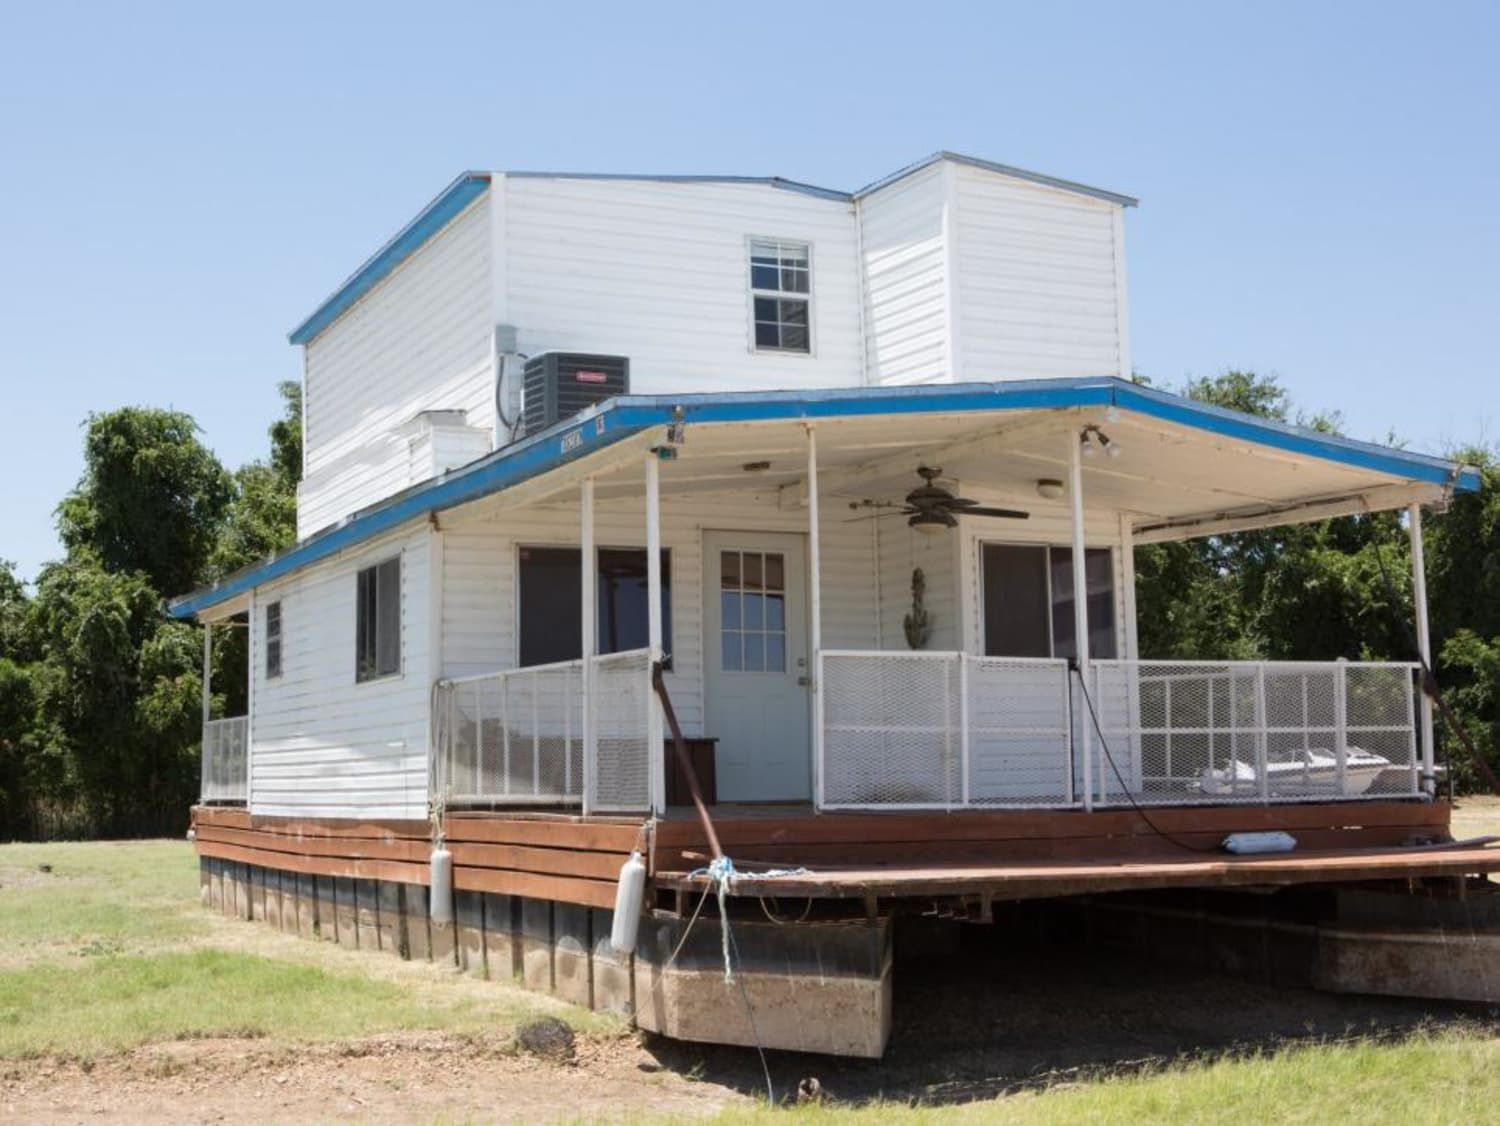 Before & After: 'Fixer Upper' Totally Transformed a Rundown Houseboat